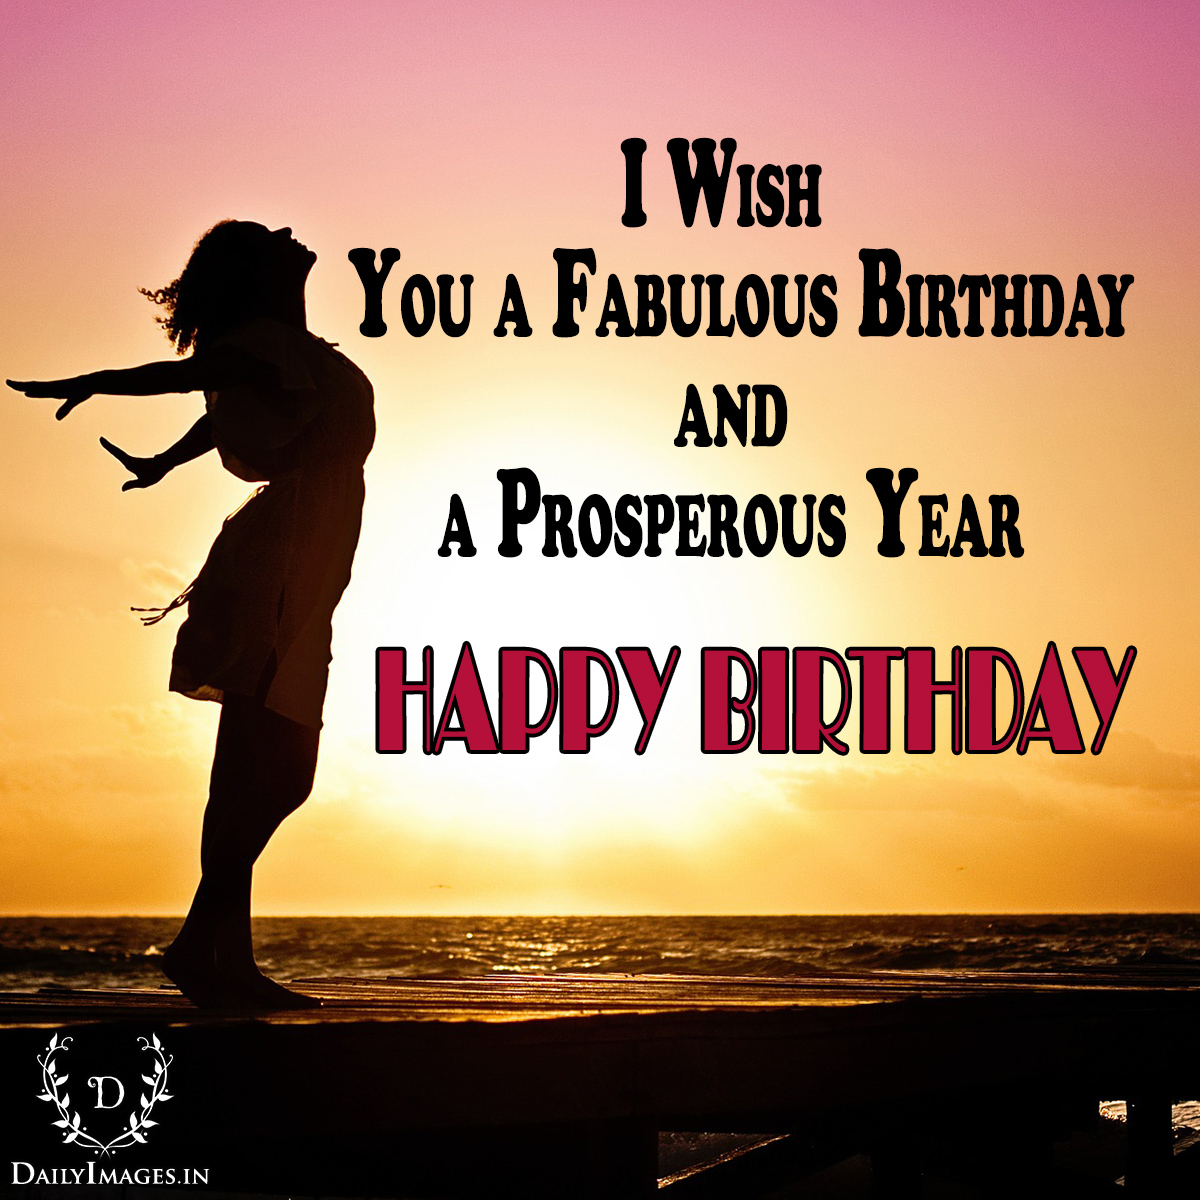 wish you a very happy and prosperous birthday ; a888539731aef1fb56eee7fb8688b6ad